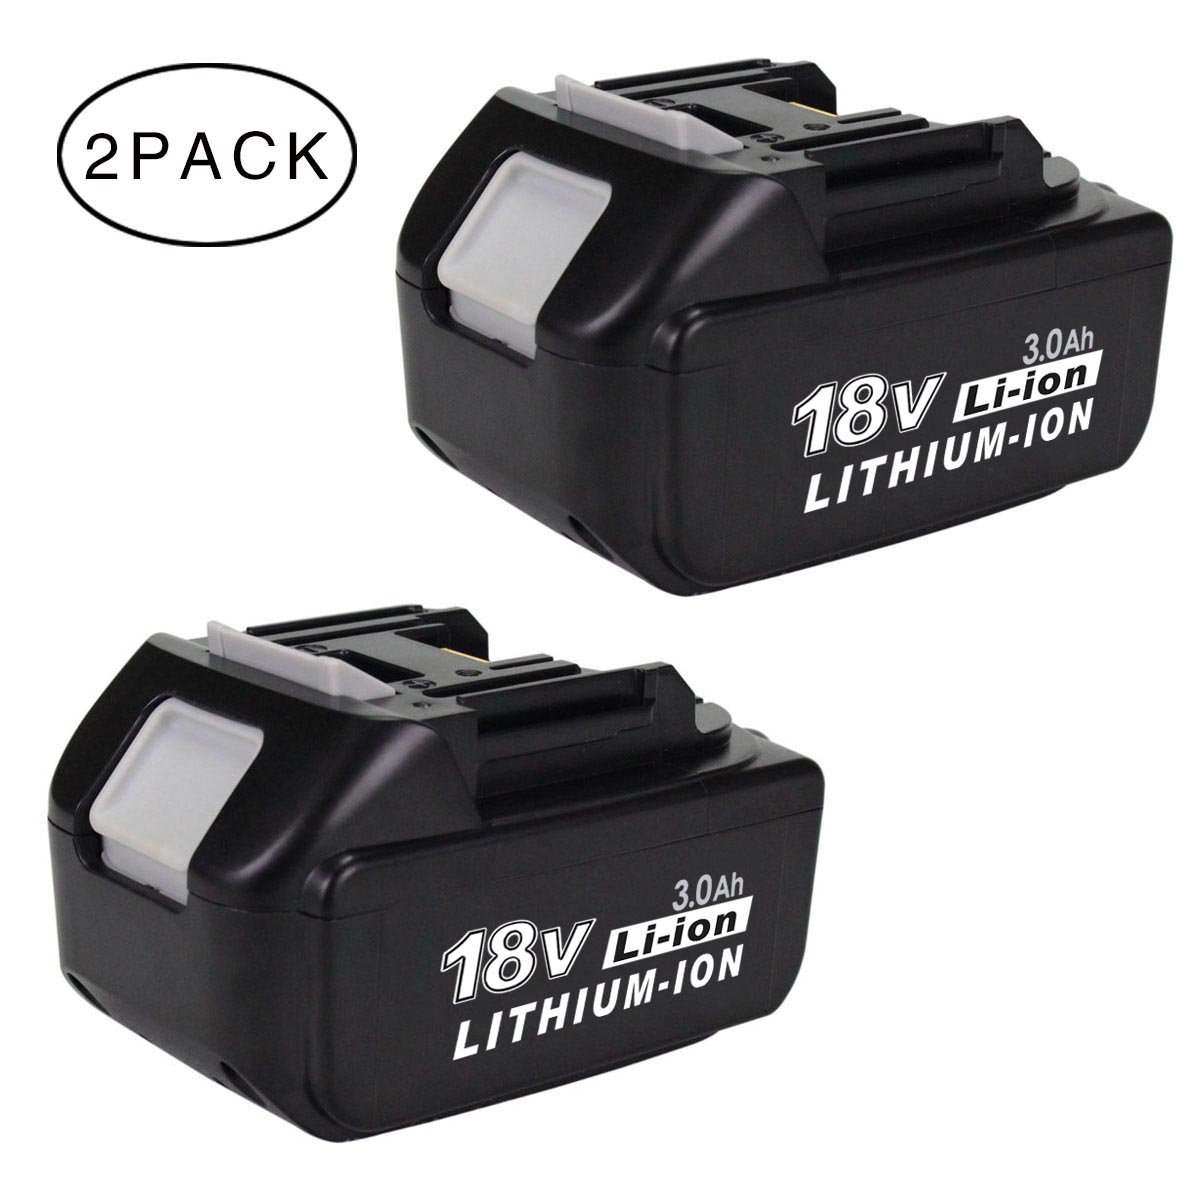 gerit 2packs 18v 3ah lithium ion replacement battery for makita cordless drill ebay. Black Bedroom Furniture Sets. Home Design Ideas